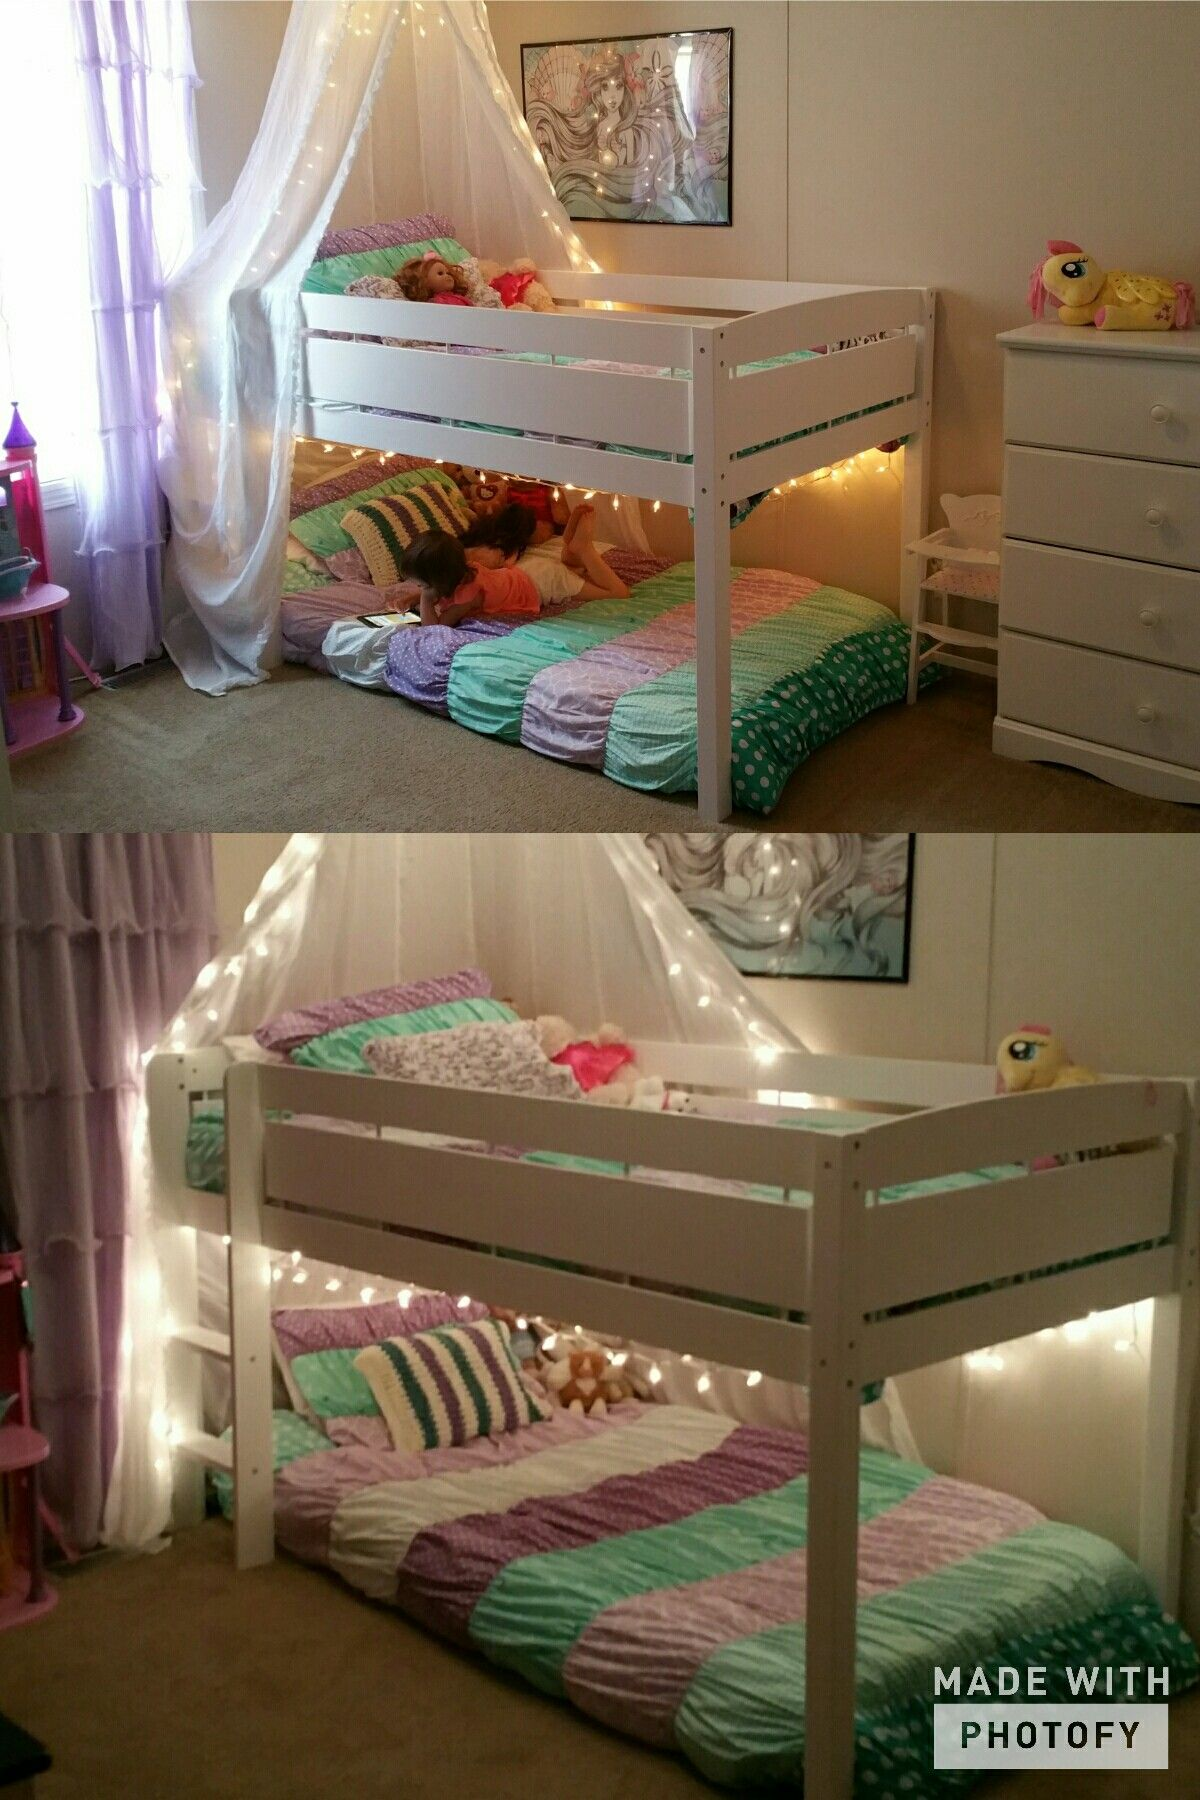 Small bedroom loft bed ideas  For a Princess mermaid theme bedroom Beds are great for small